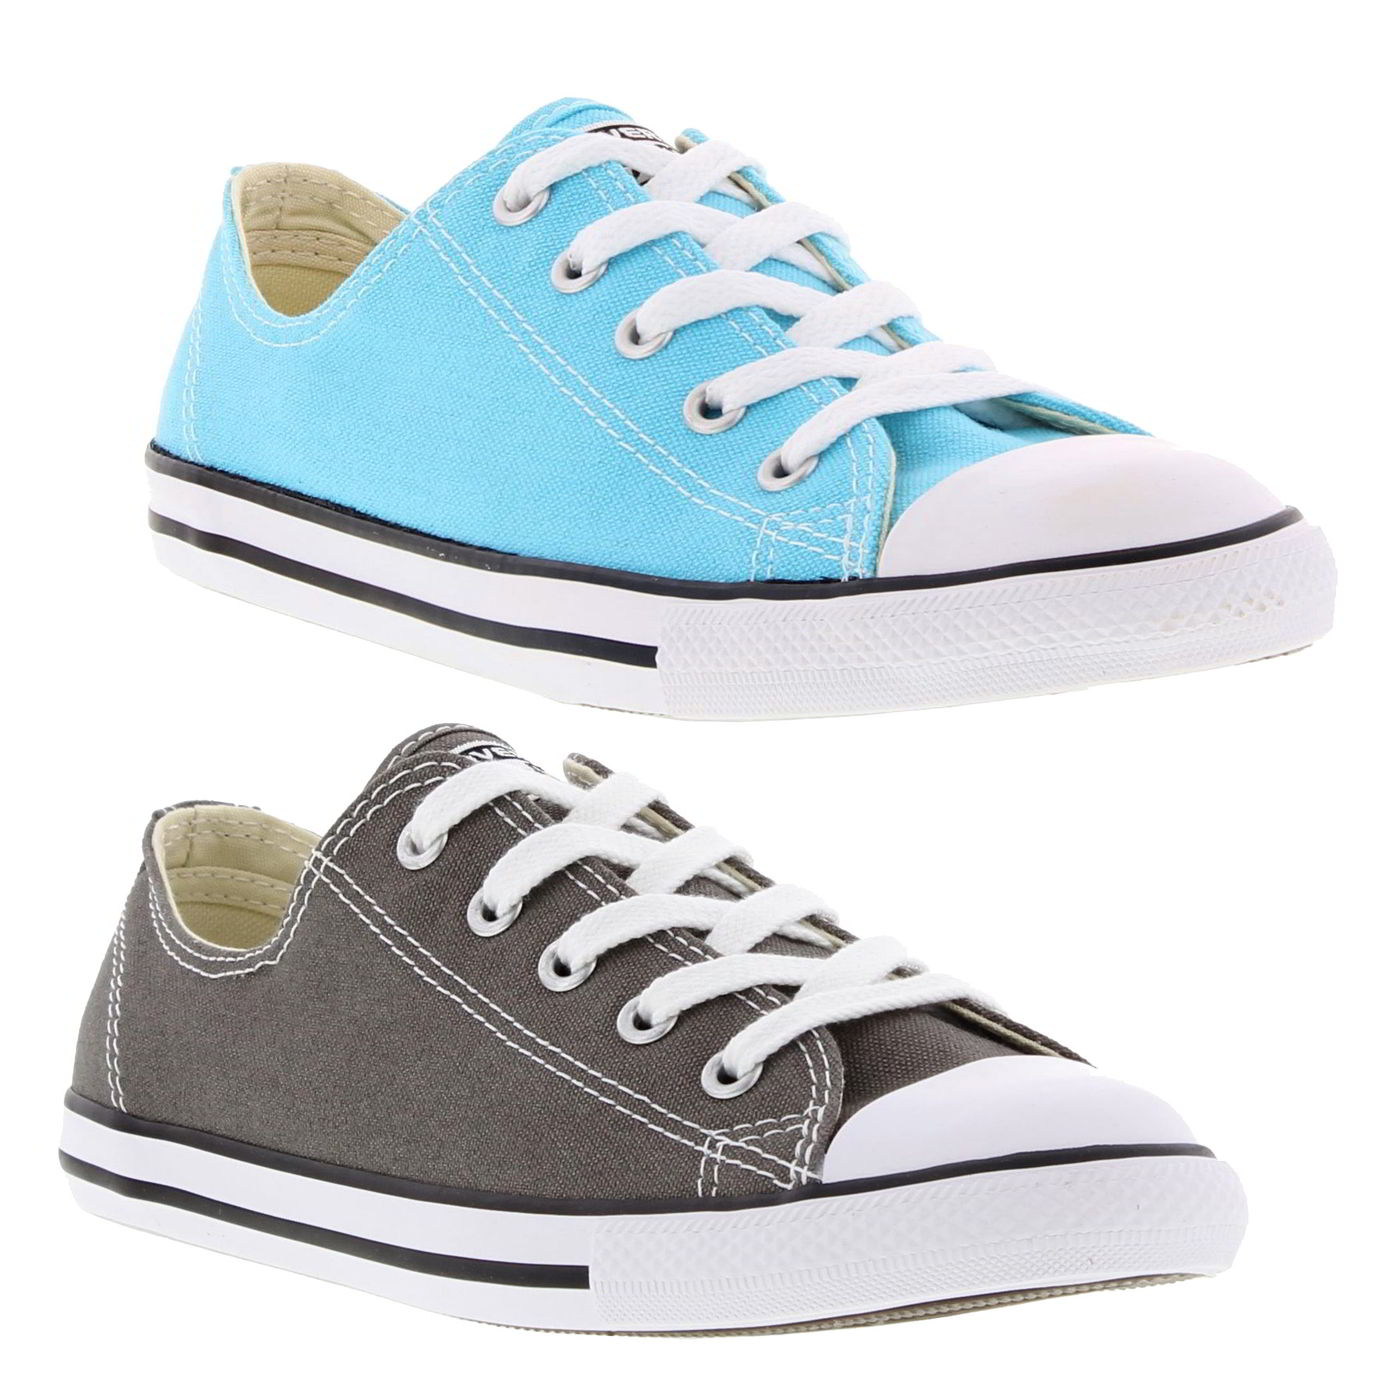 Details about Converse All Star Dainty Oxford Womens Ladies Canvas Shoes Trainers Size 4 8